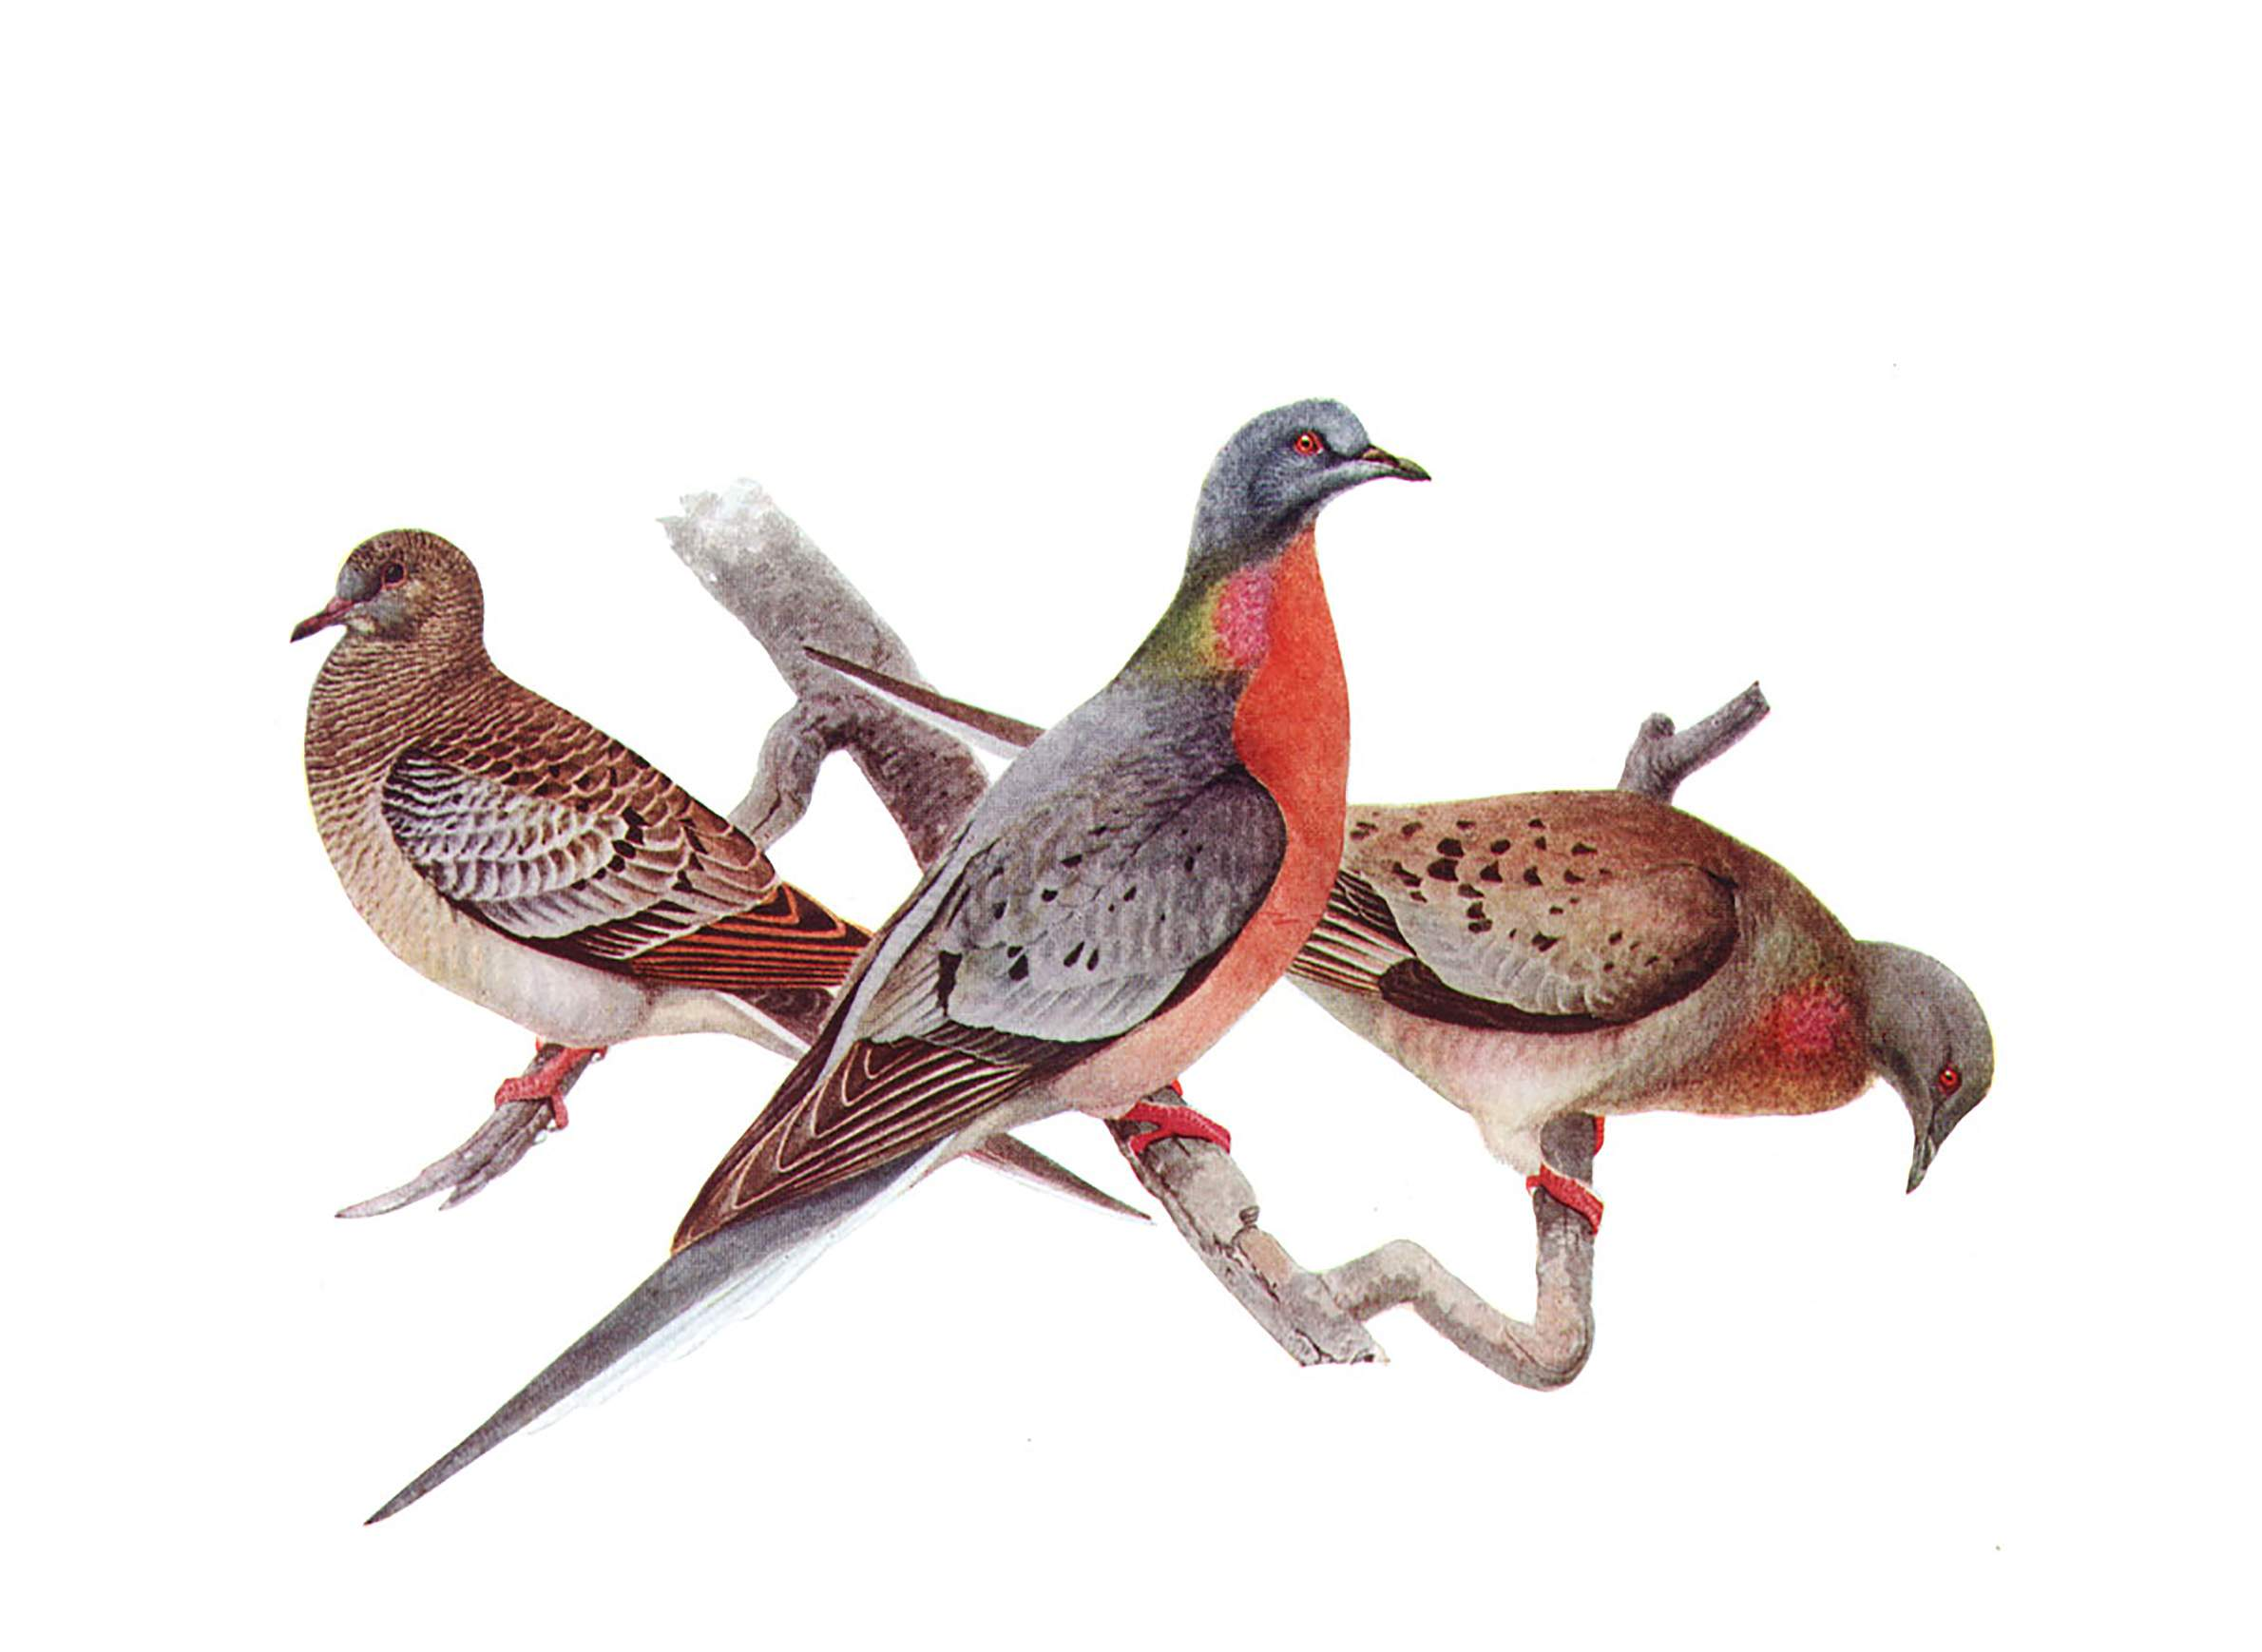 What Does The Passenger Pigeon Have To Do With Lyme Disease? | WisContext